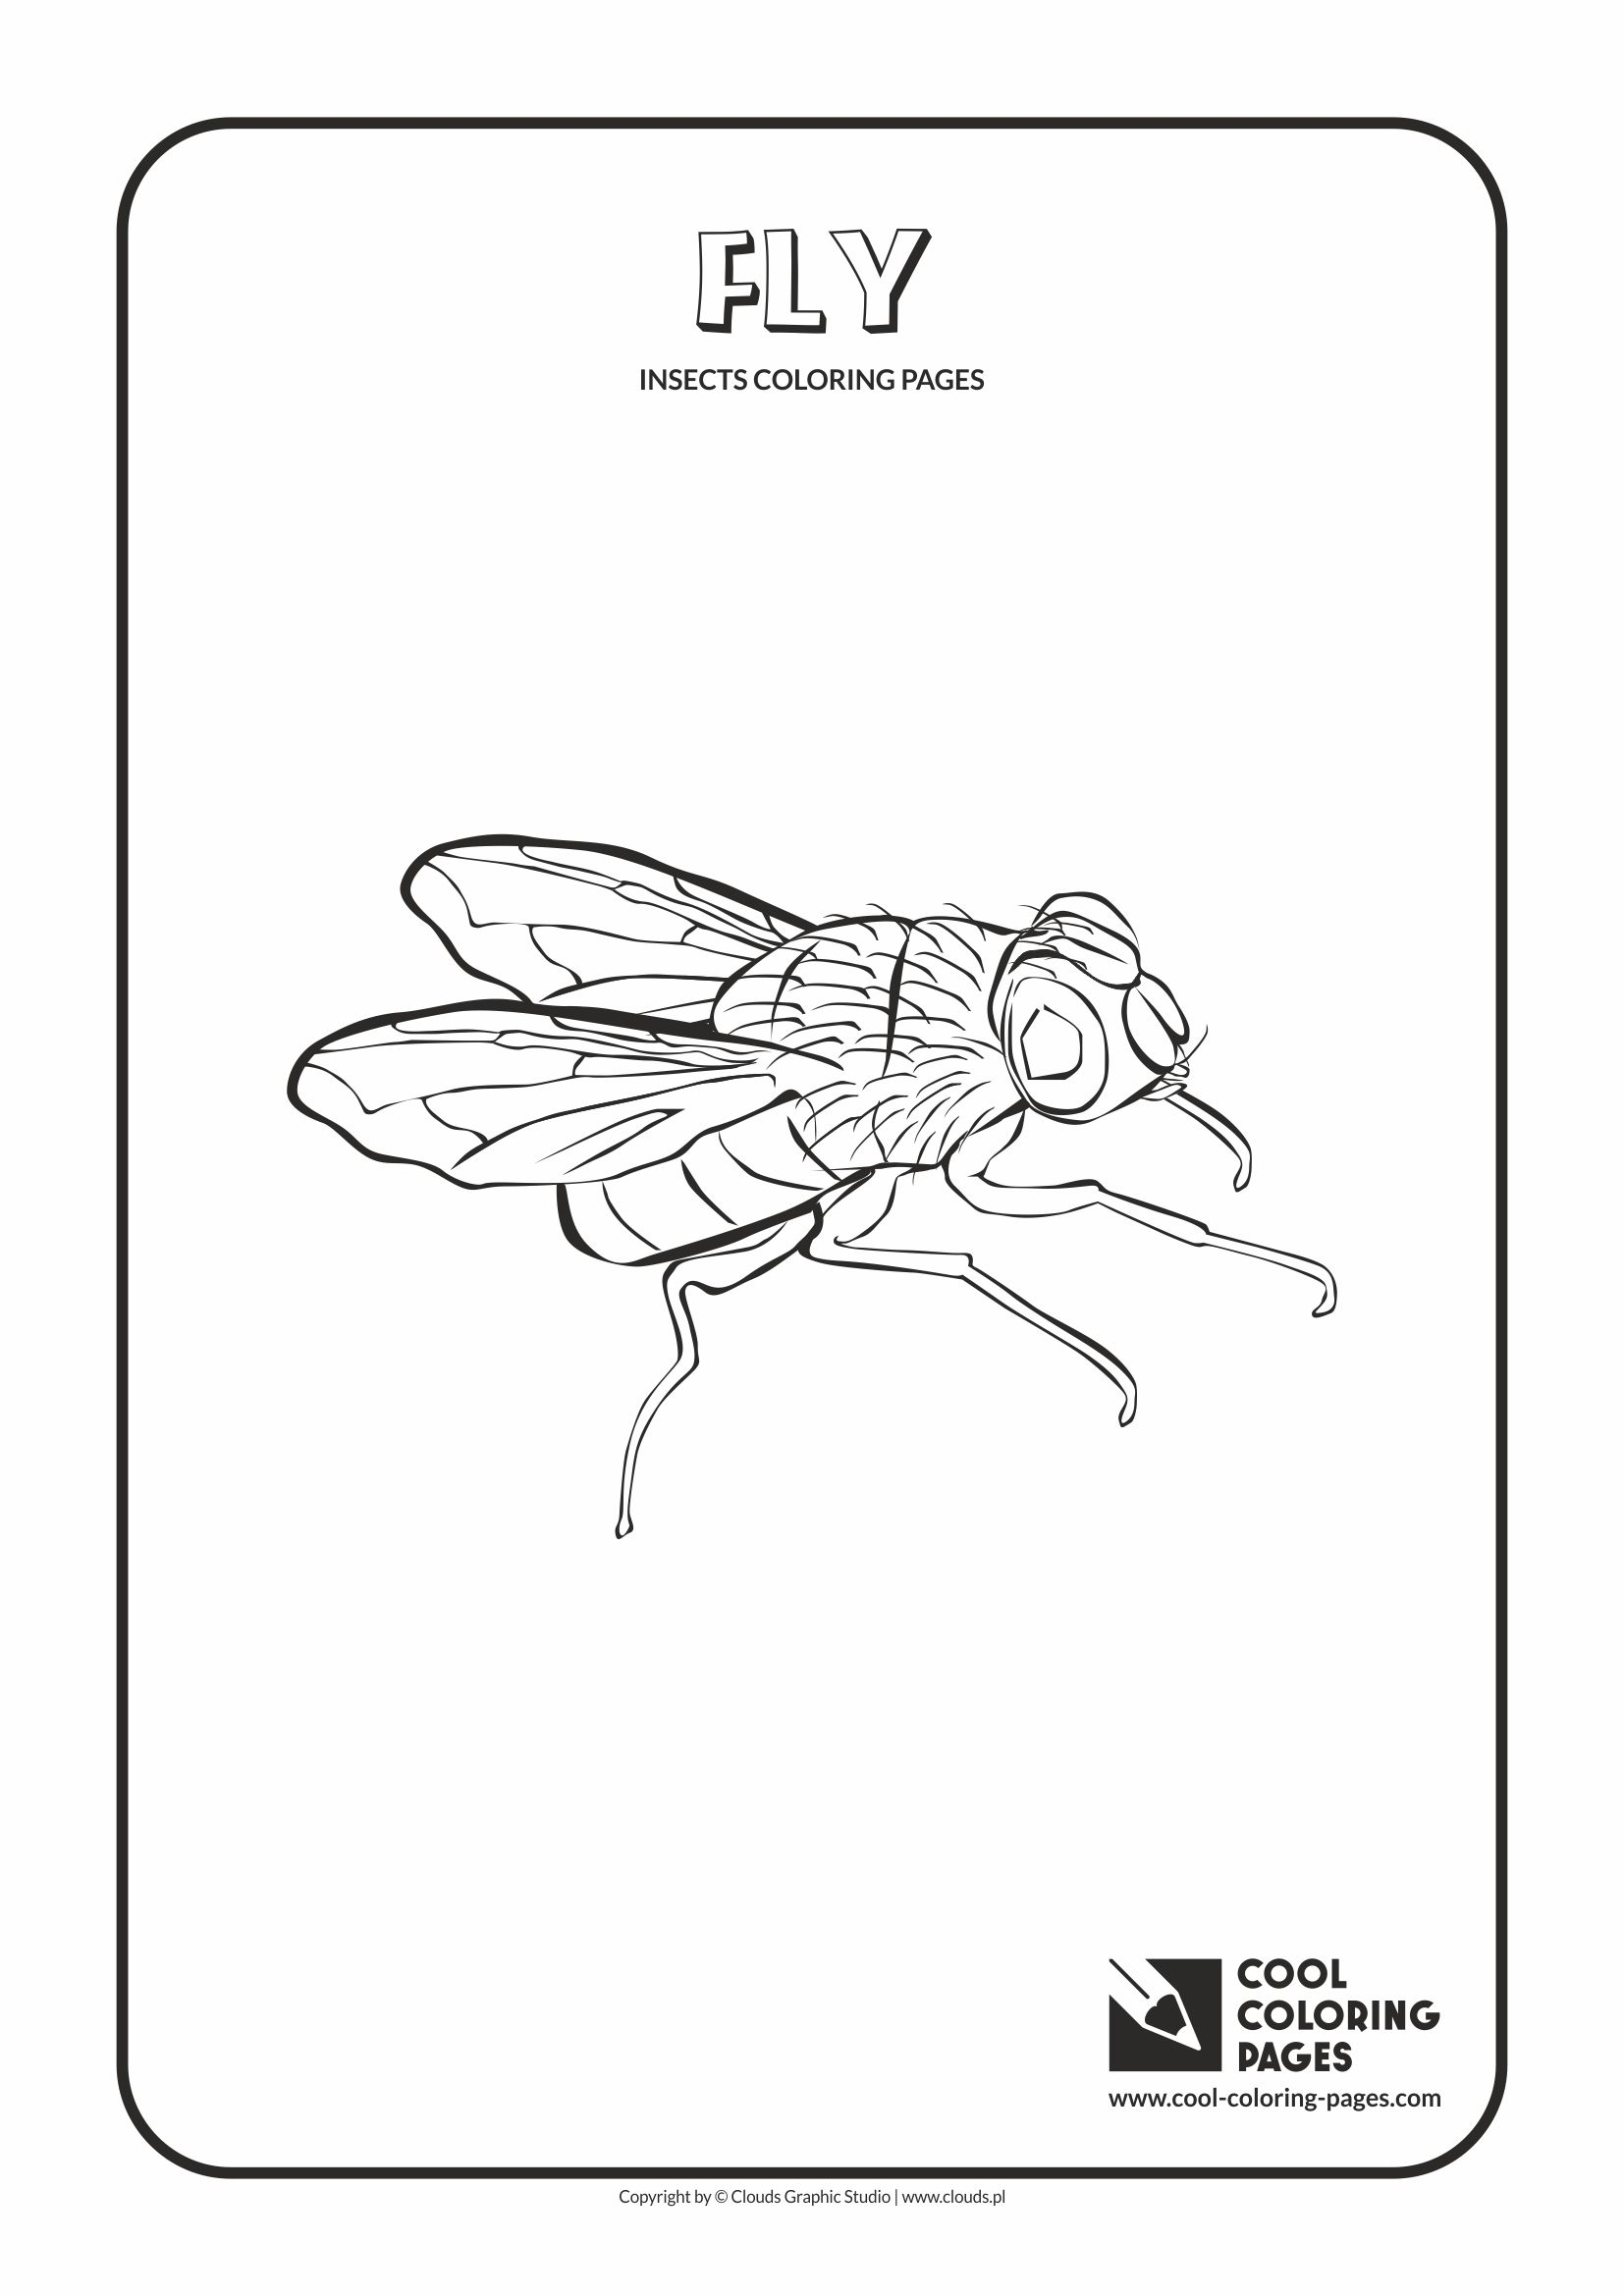 Cool Coloring Pages Insects coloring pages Cool Coloring